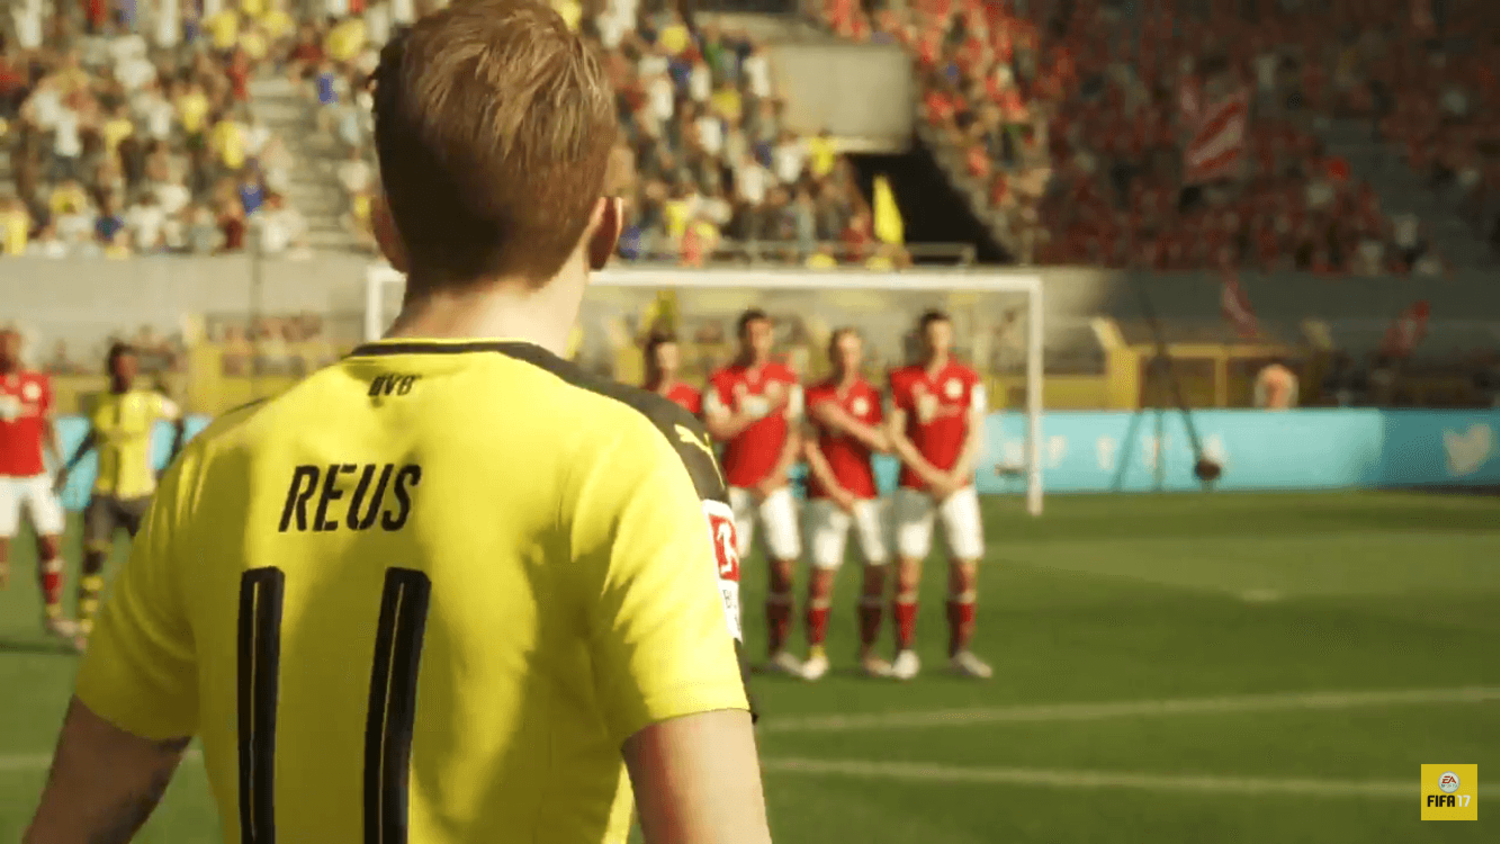 FIFA17 Official Gameplay Trailer Released